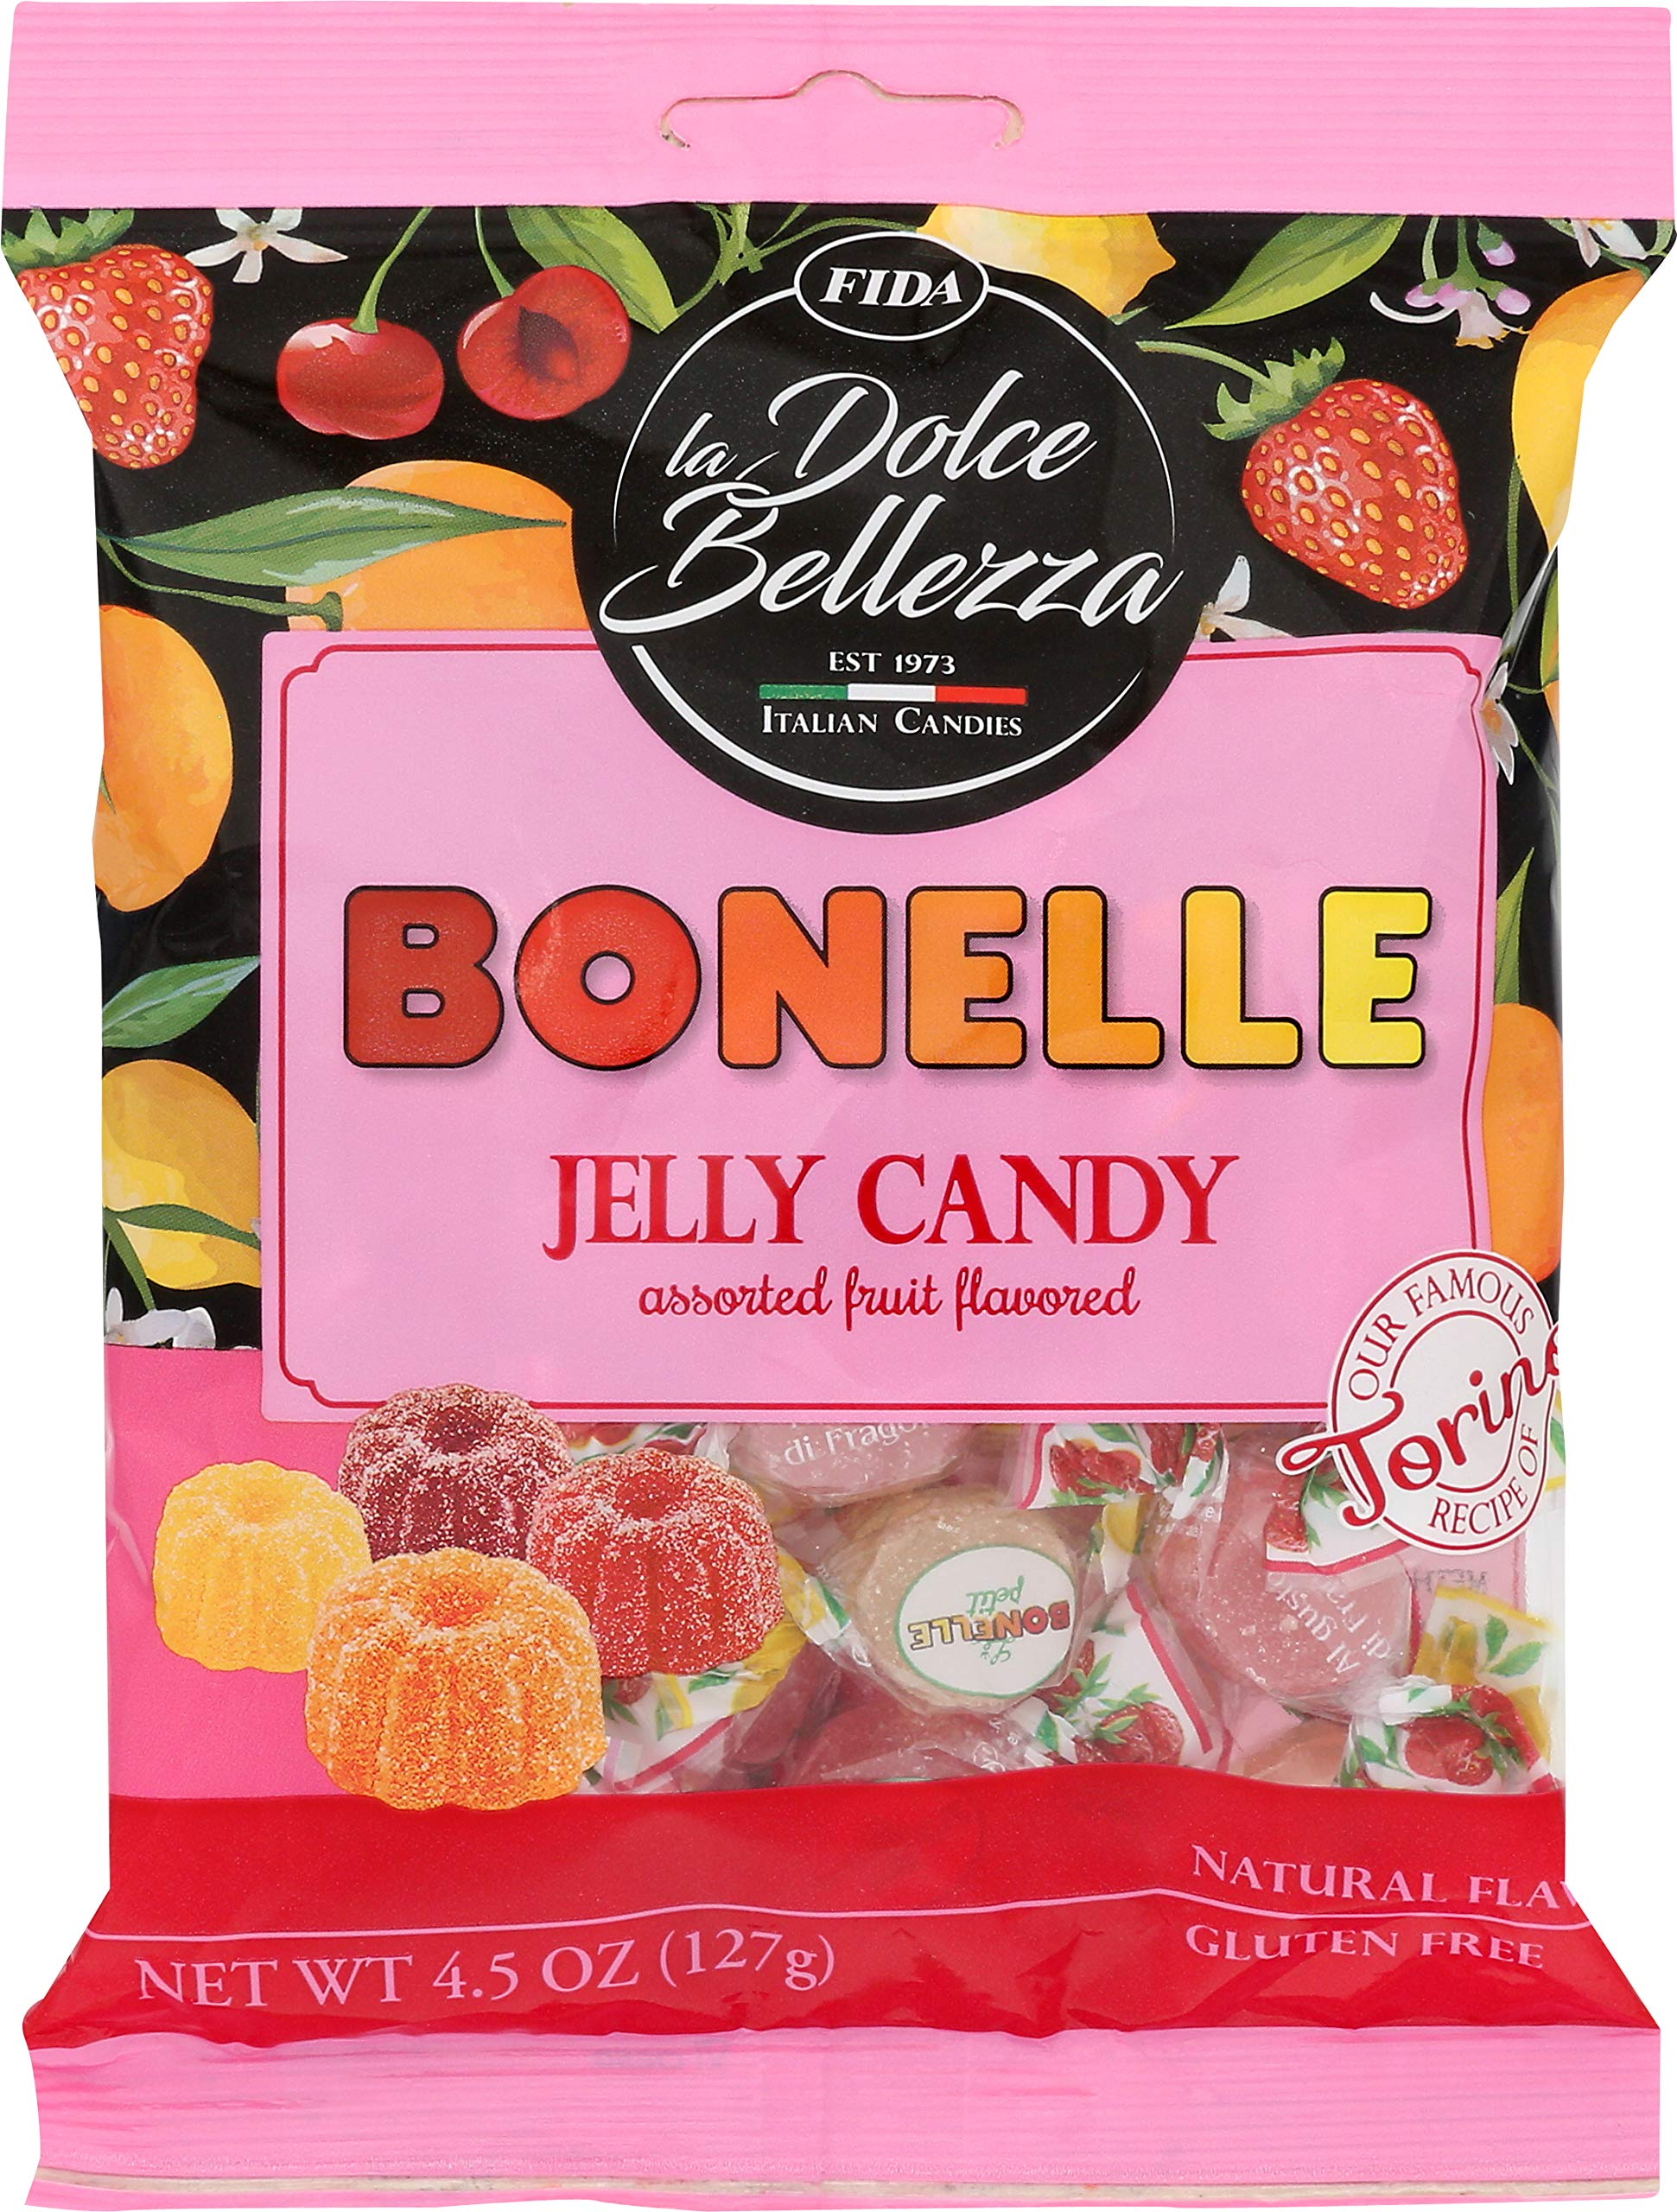 Fida Bonelle Assorted Fruit Flavored Jelly Candy, 4.5 Ounce (Pack of 12) by Fida